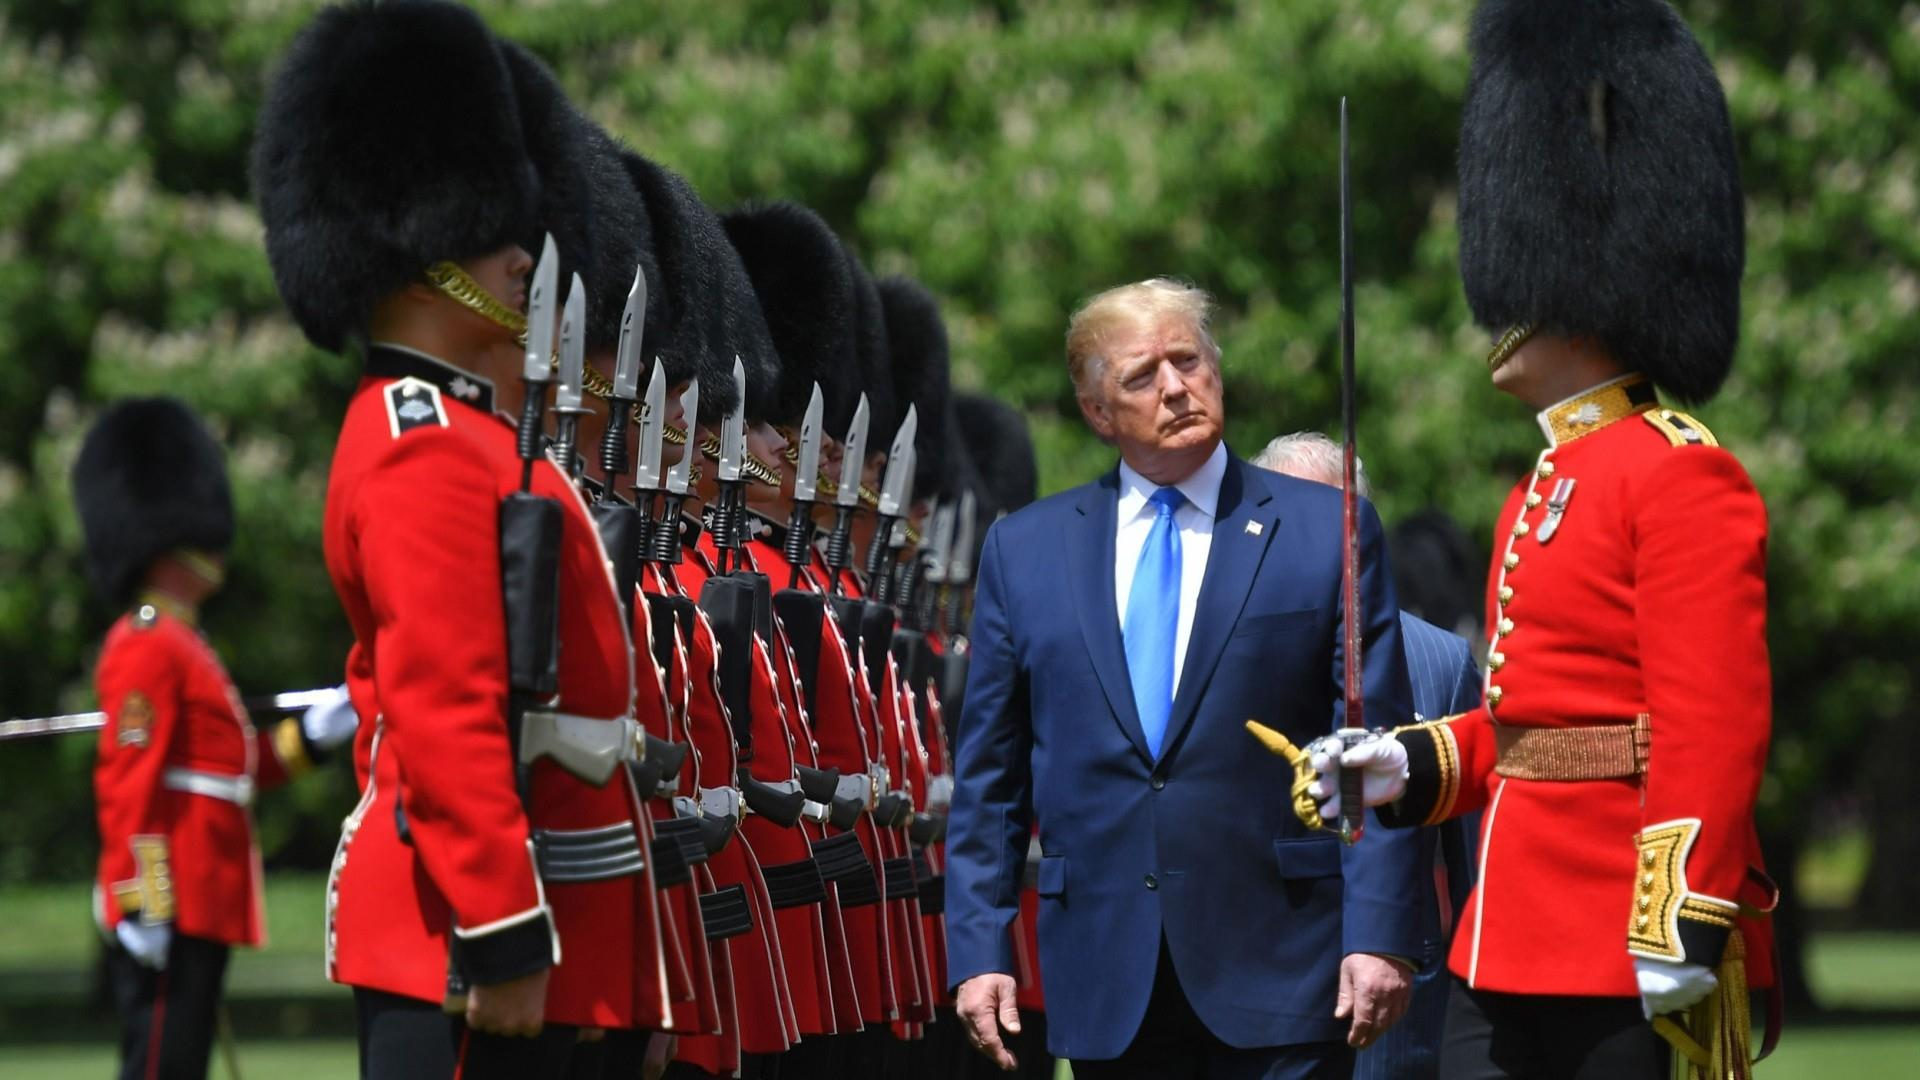 Trump's UK trip begins with ceremony, insults